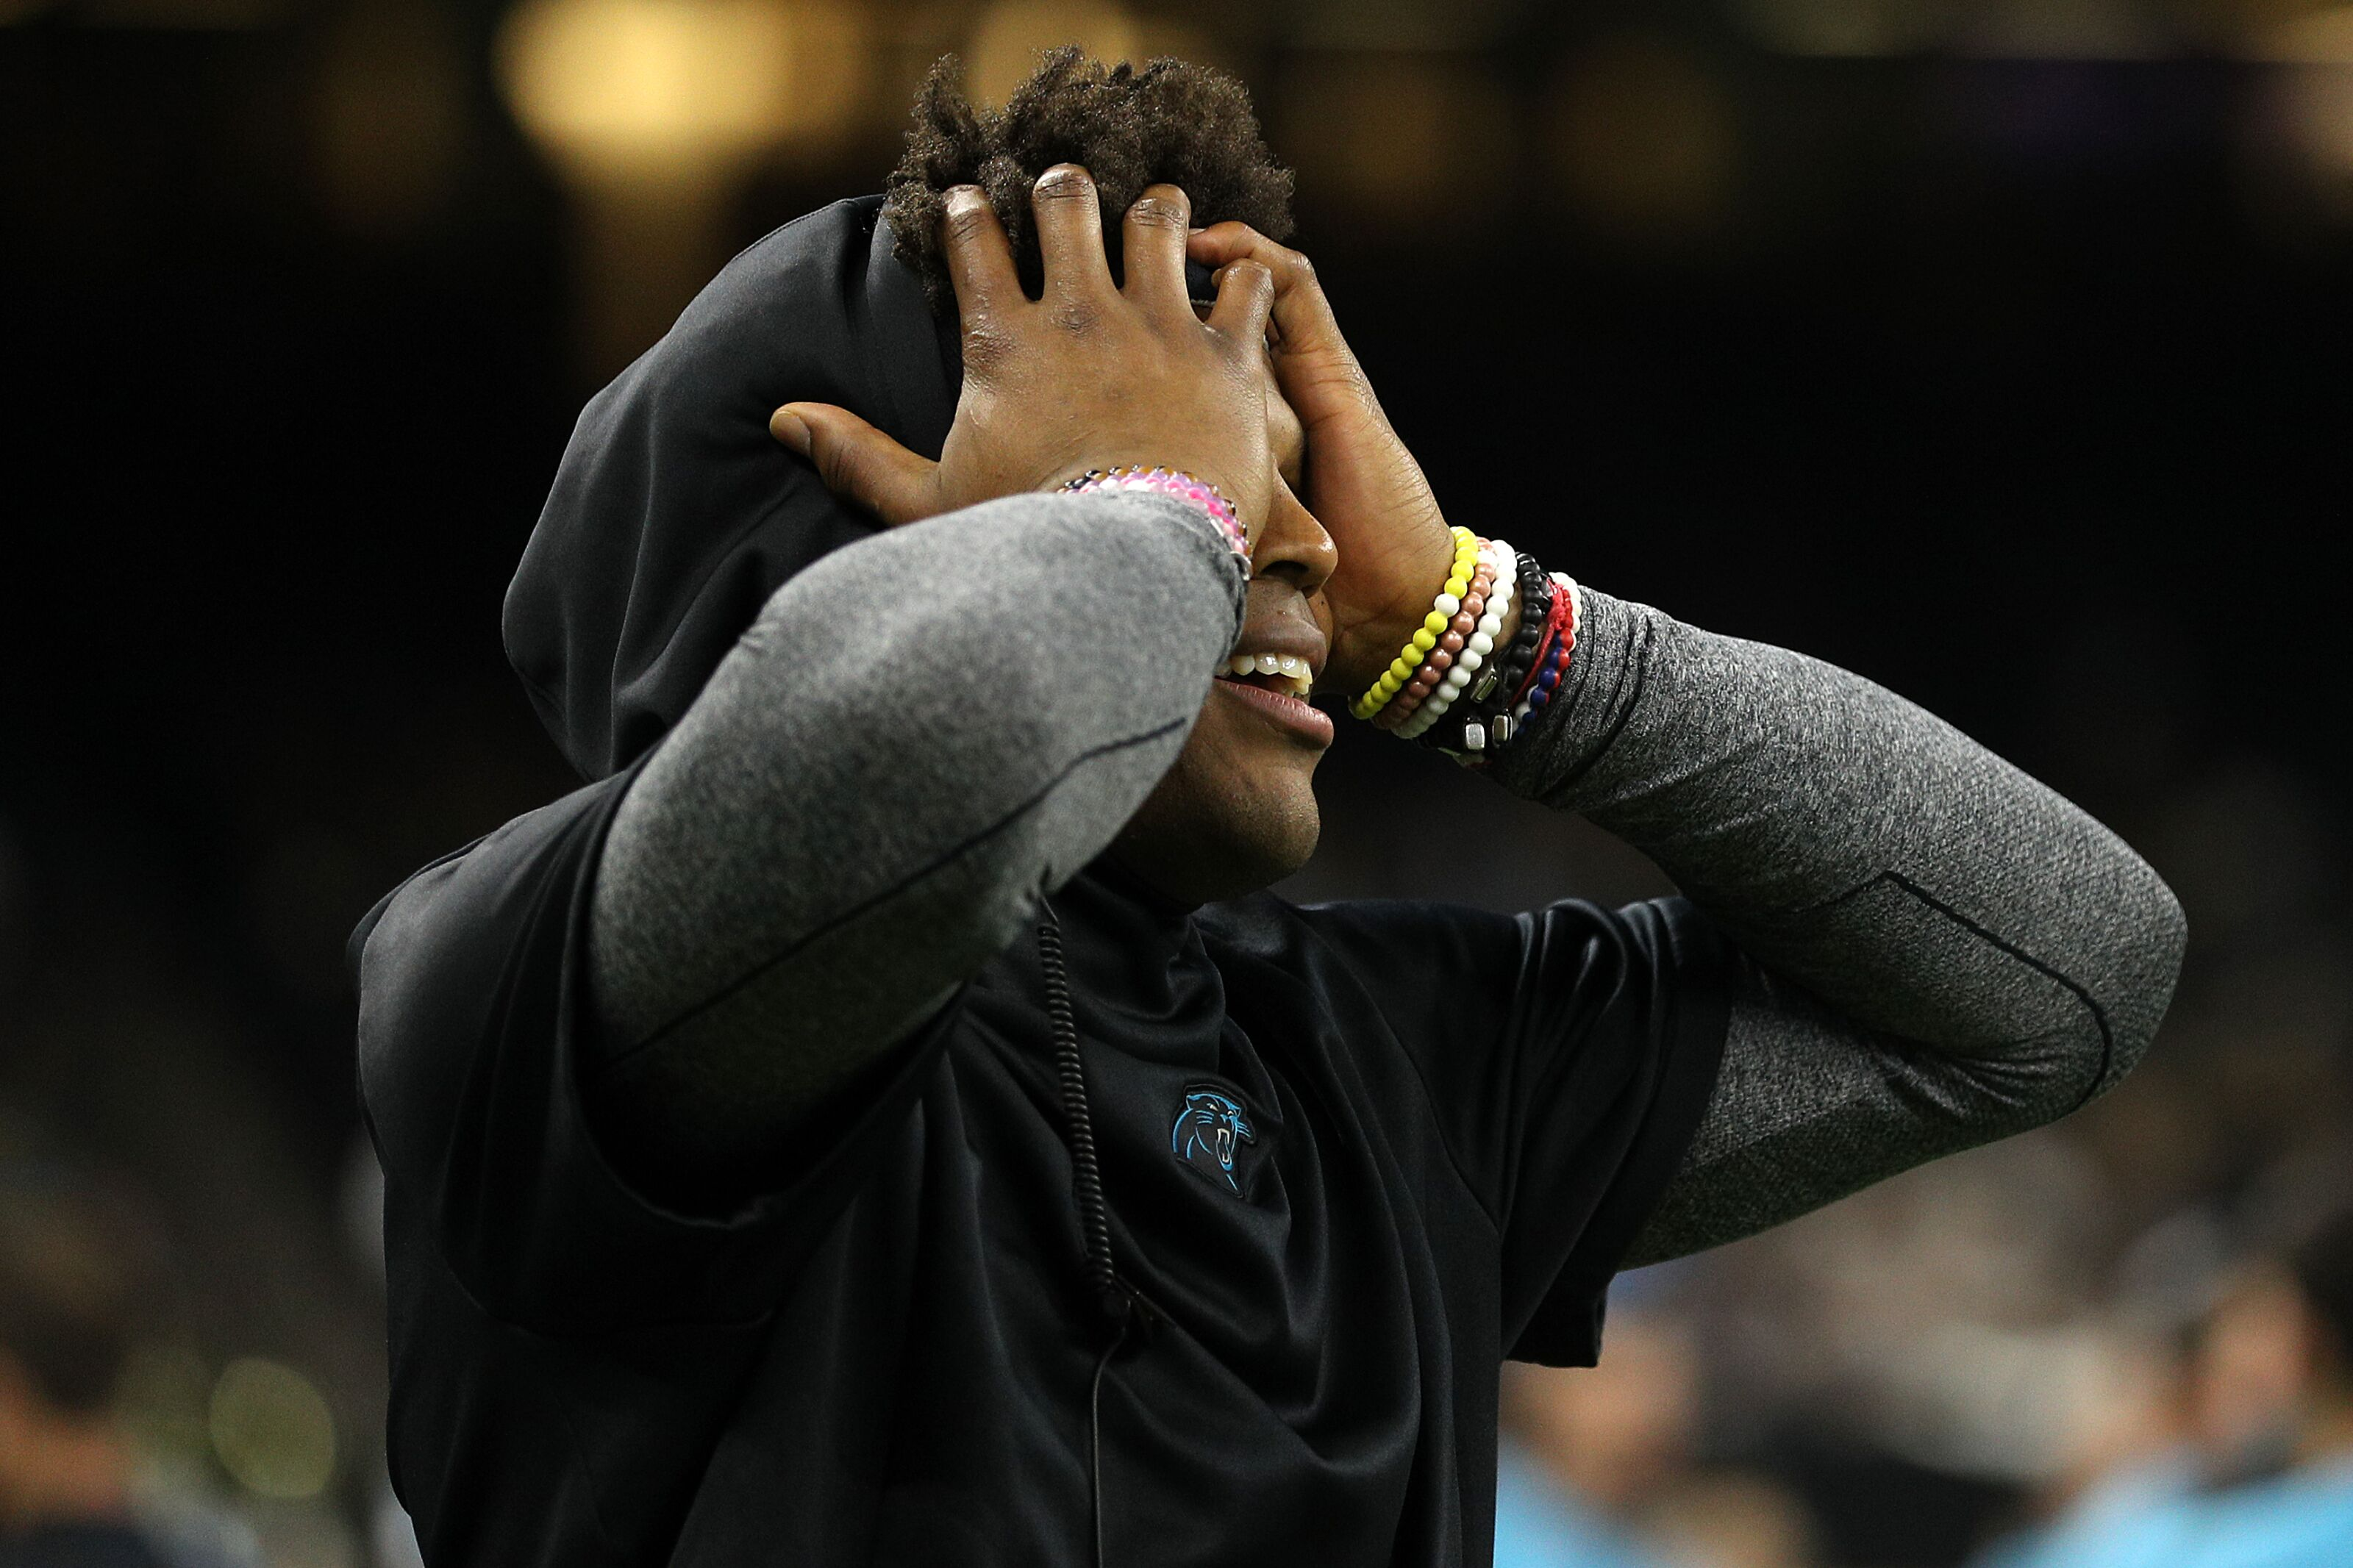 Cam Newton: Is new YouTube channel a good idea?